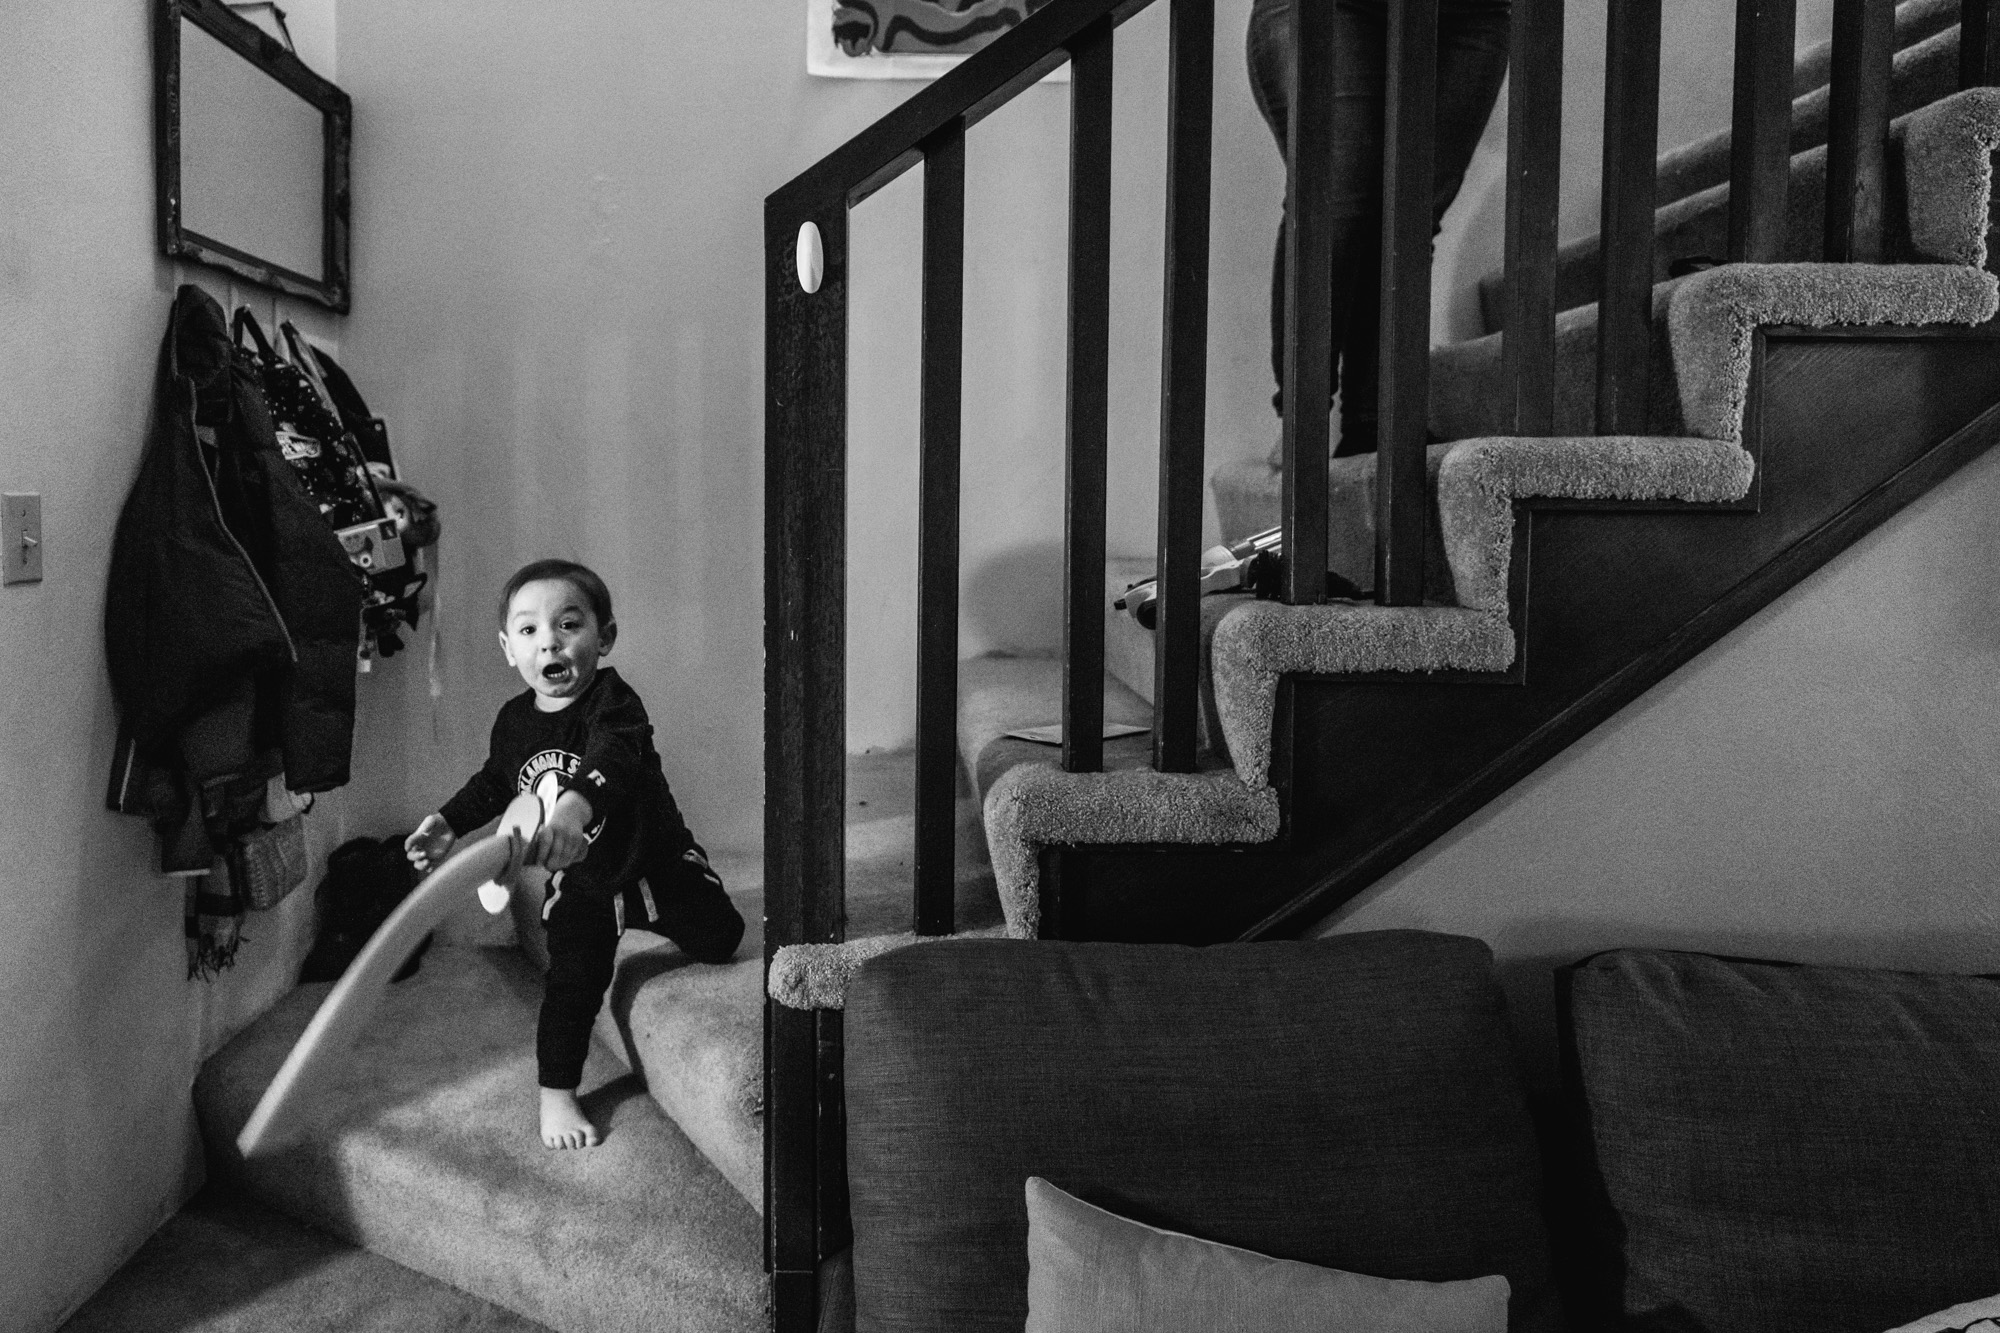 Little boy standing on his stairs at home swings a sword at the camera